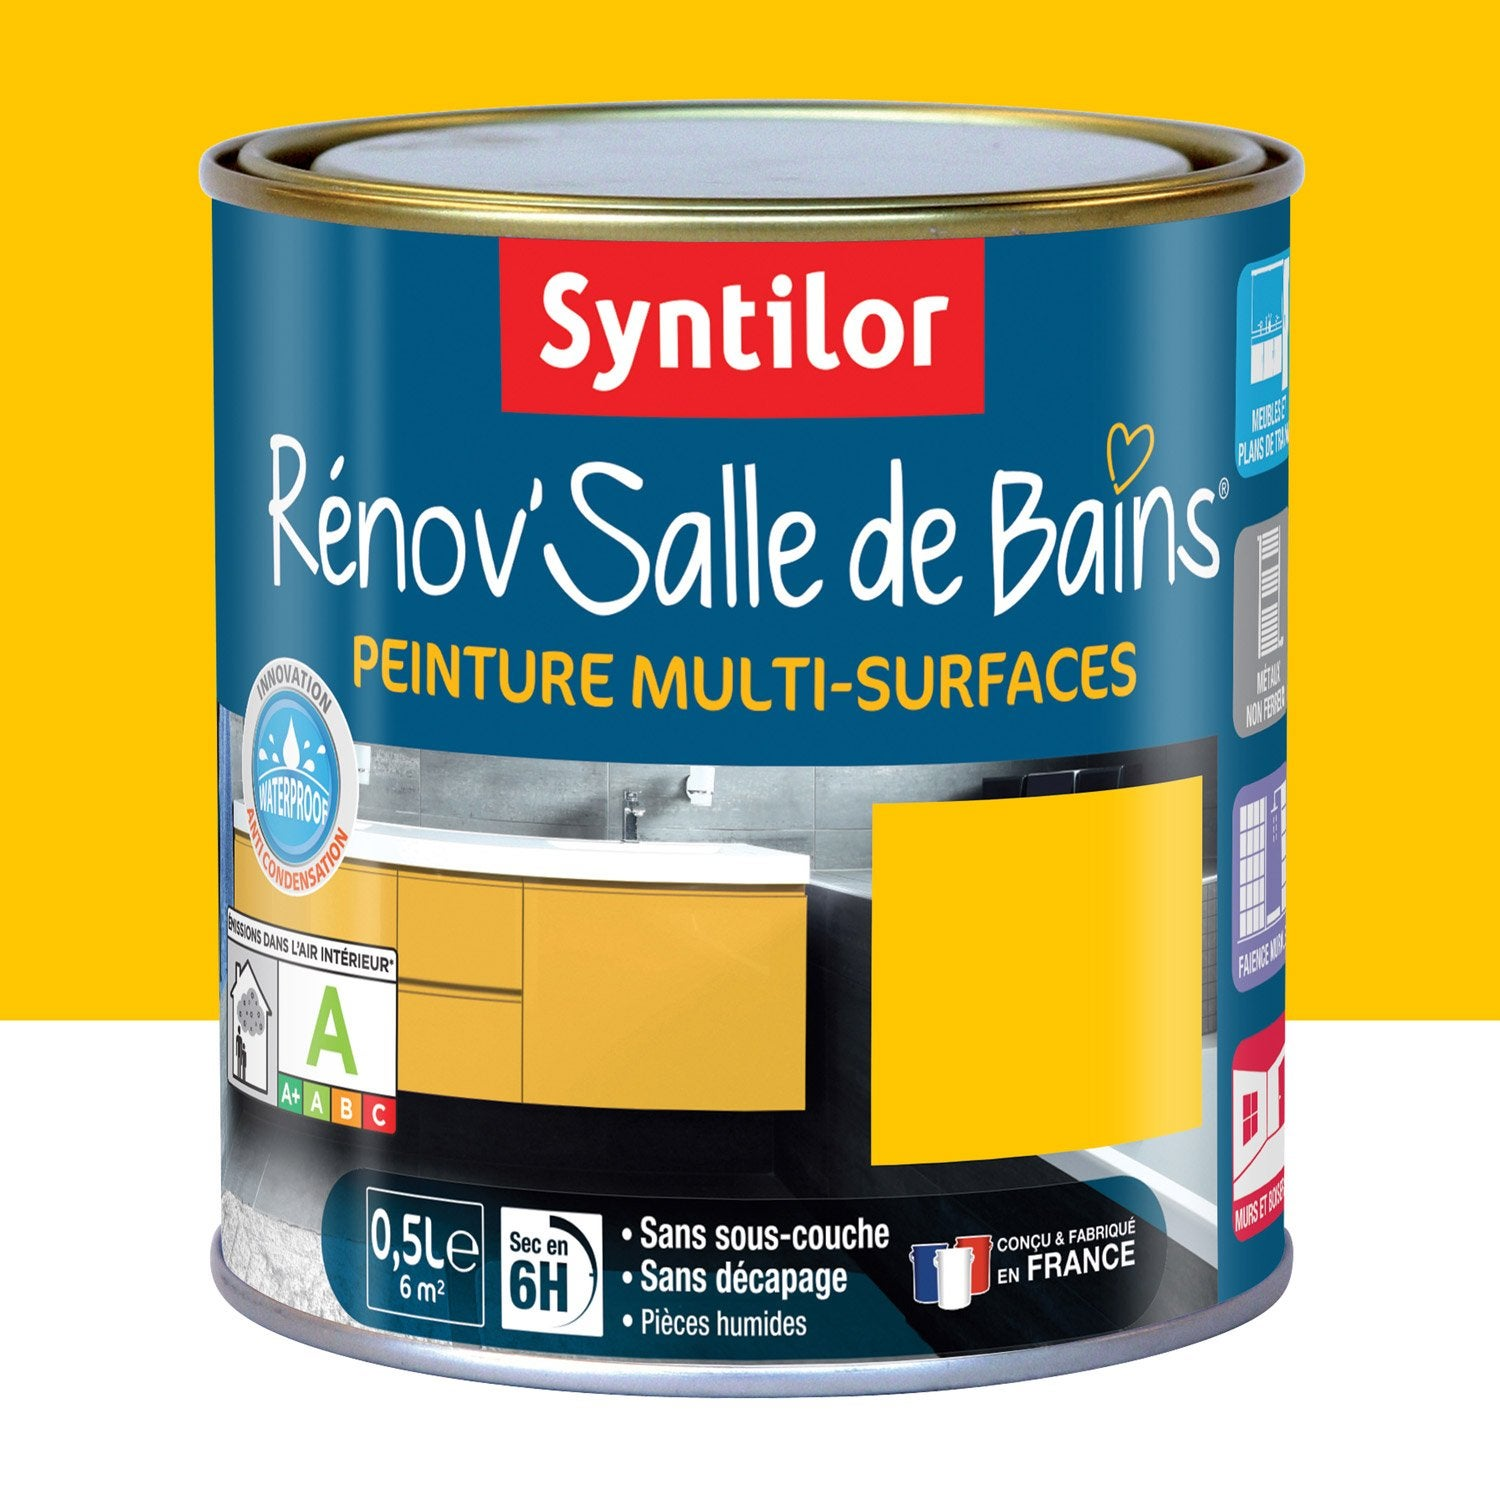 peinture r nov 39 salle de bains syntilor jaune tonic 0 5 l leroy merlin. Black Bedroom Furniture Sets. Home Design Ideas